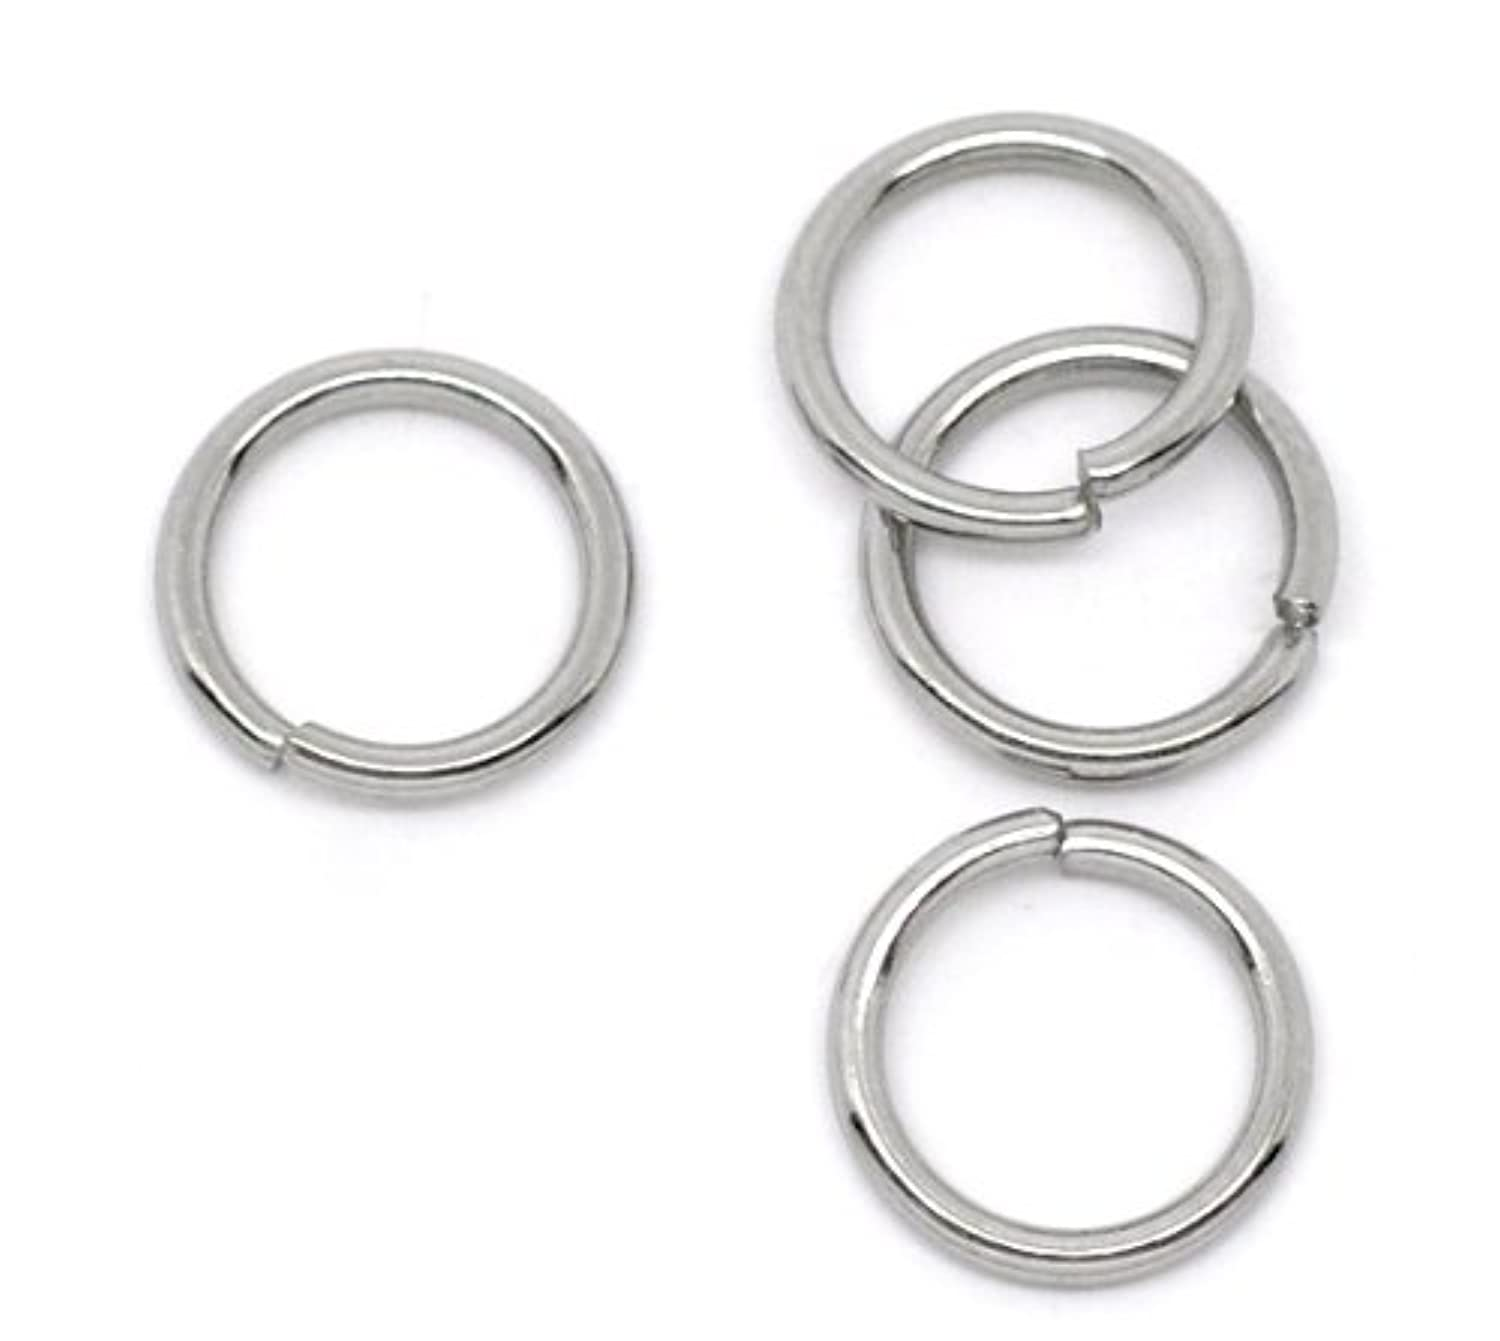 Valyria 200pcs Stainless Steel Open Jump Rings Connectors Jewelry Findings (10mm x 1.2mm)